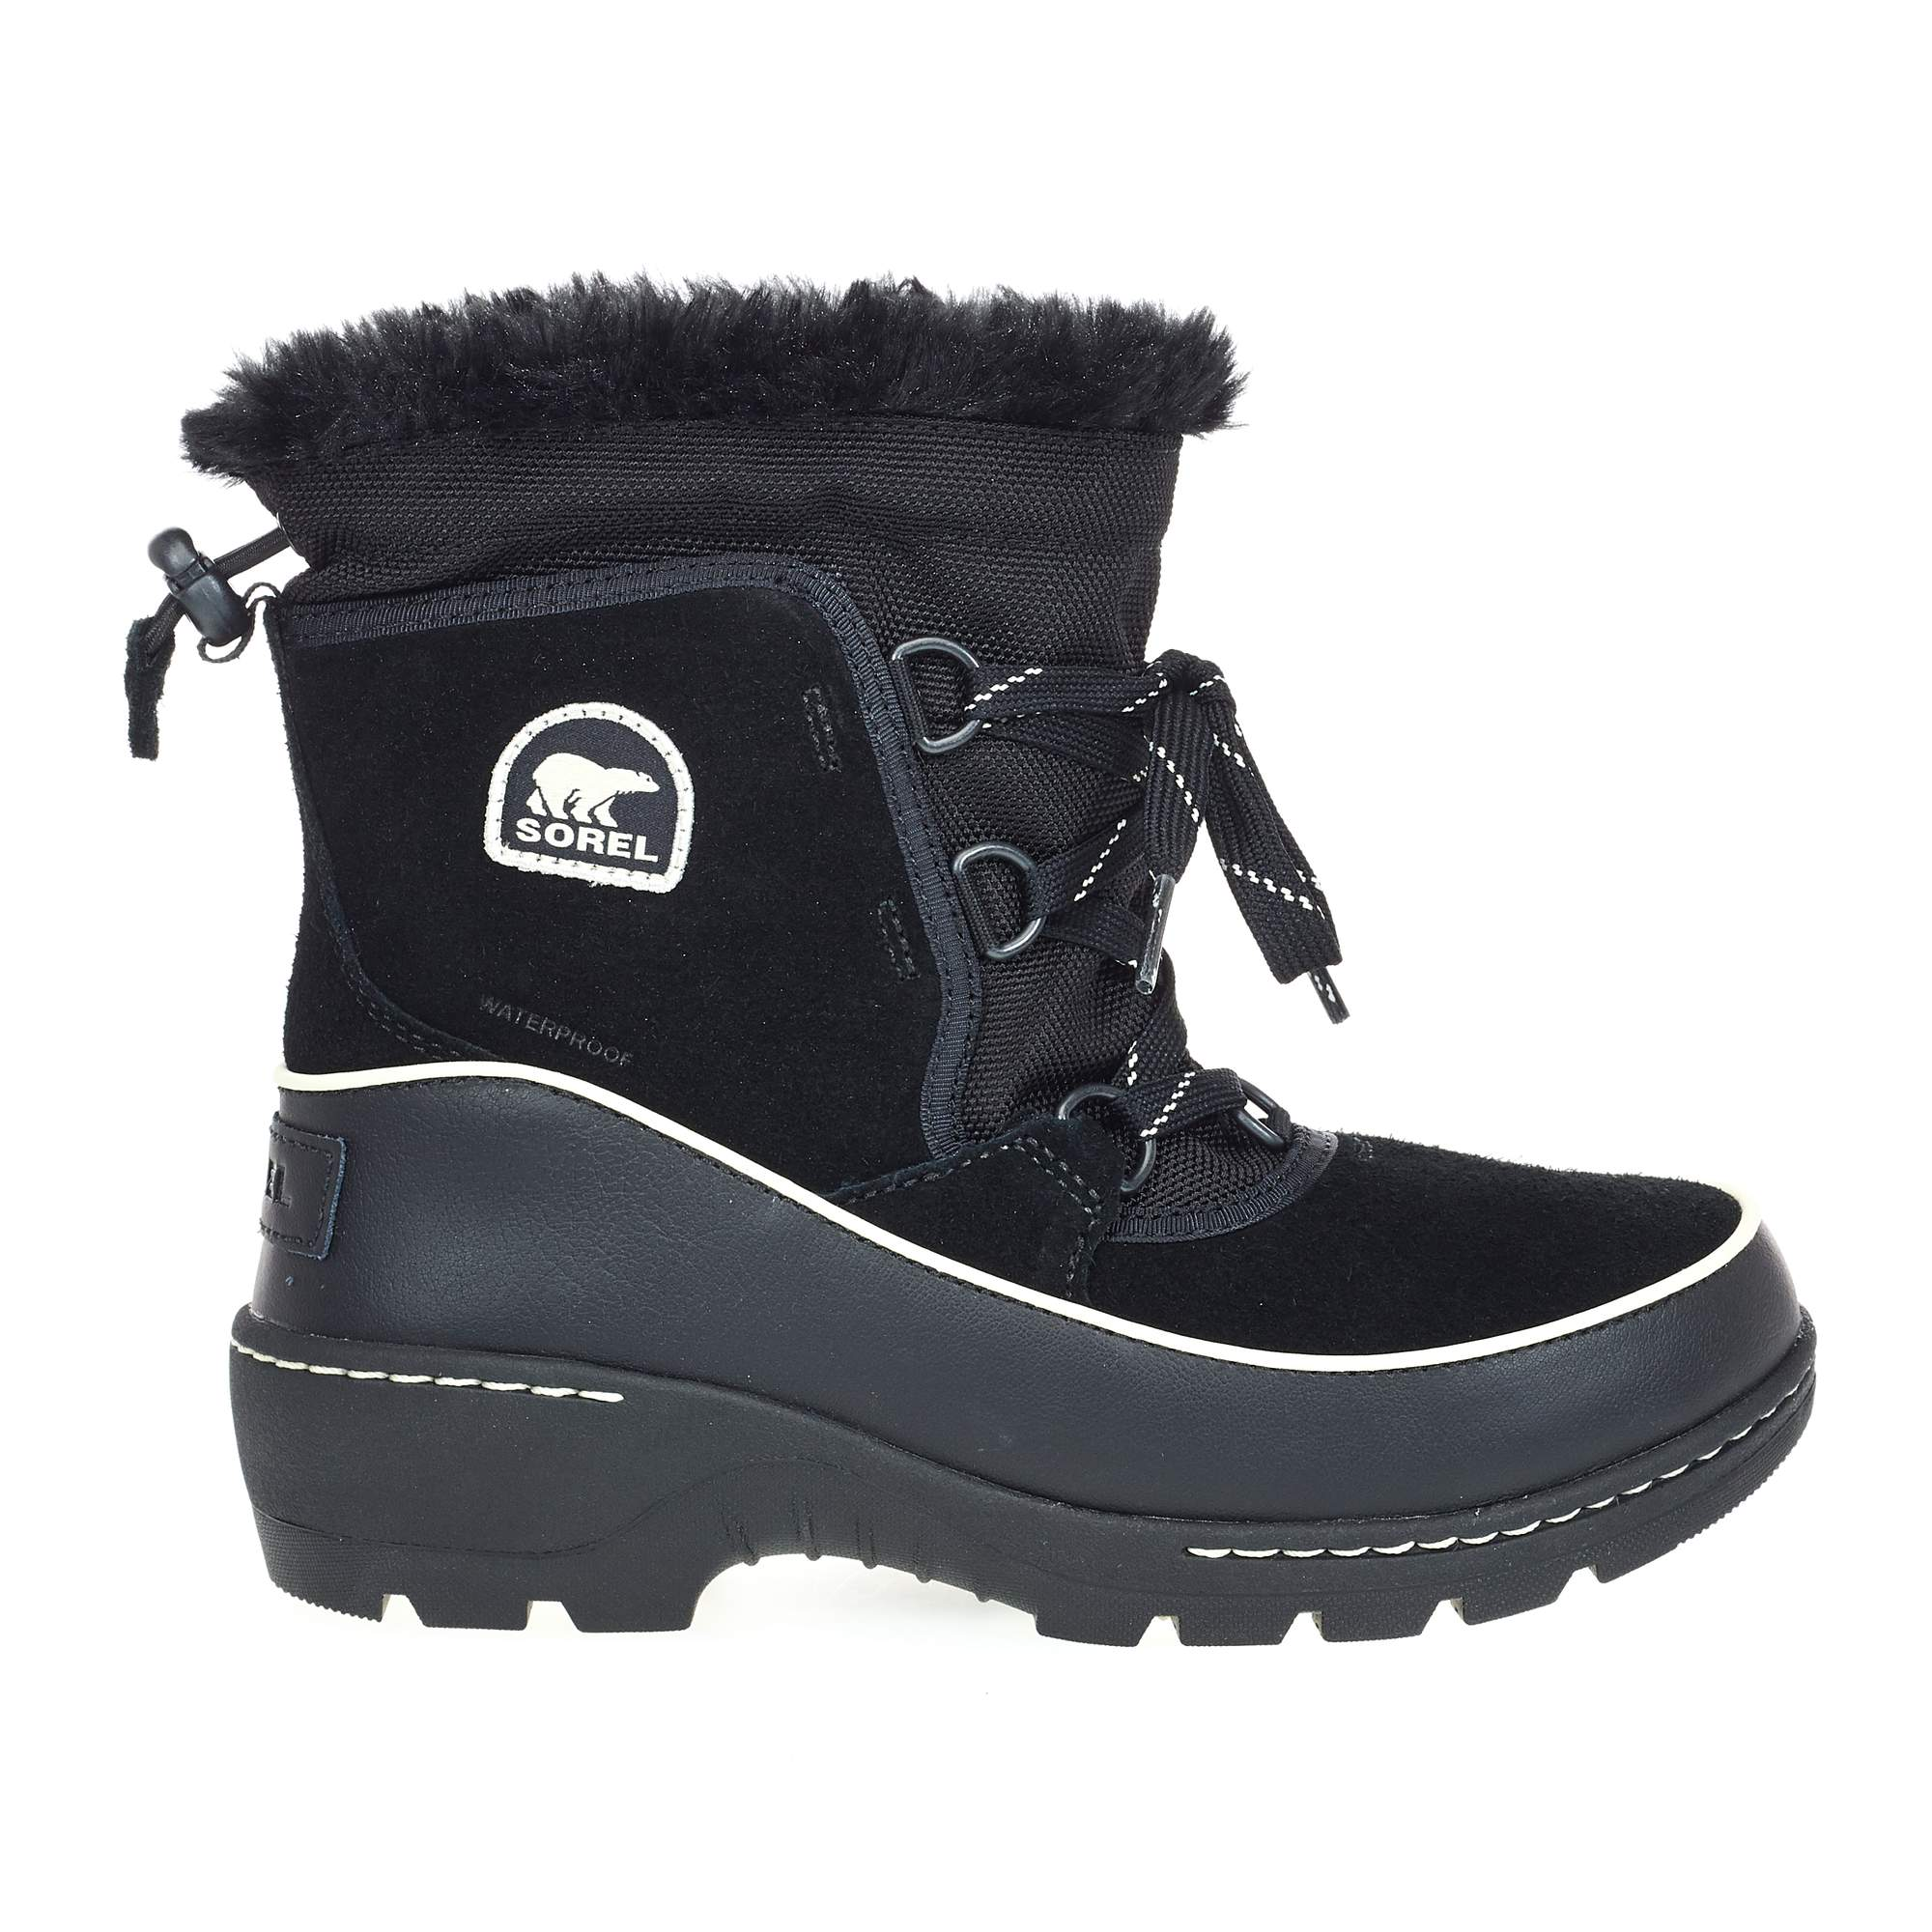 Sorel Youth Torino Kinder Gr. 28 - Winterstiefel - schwarz